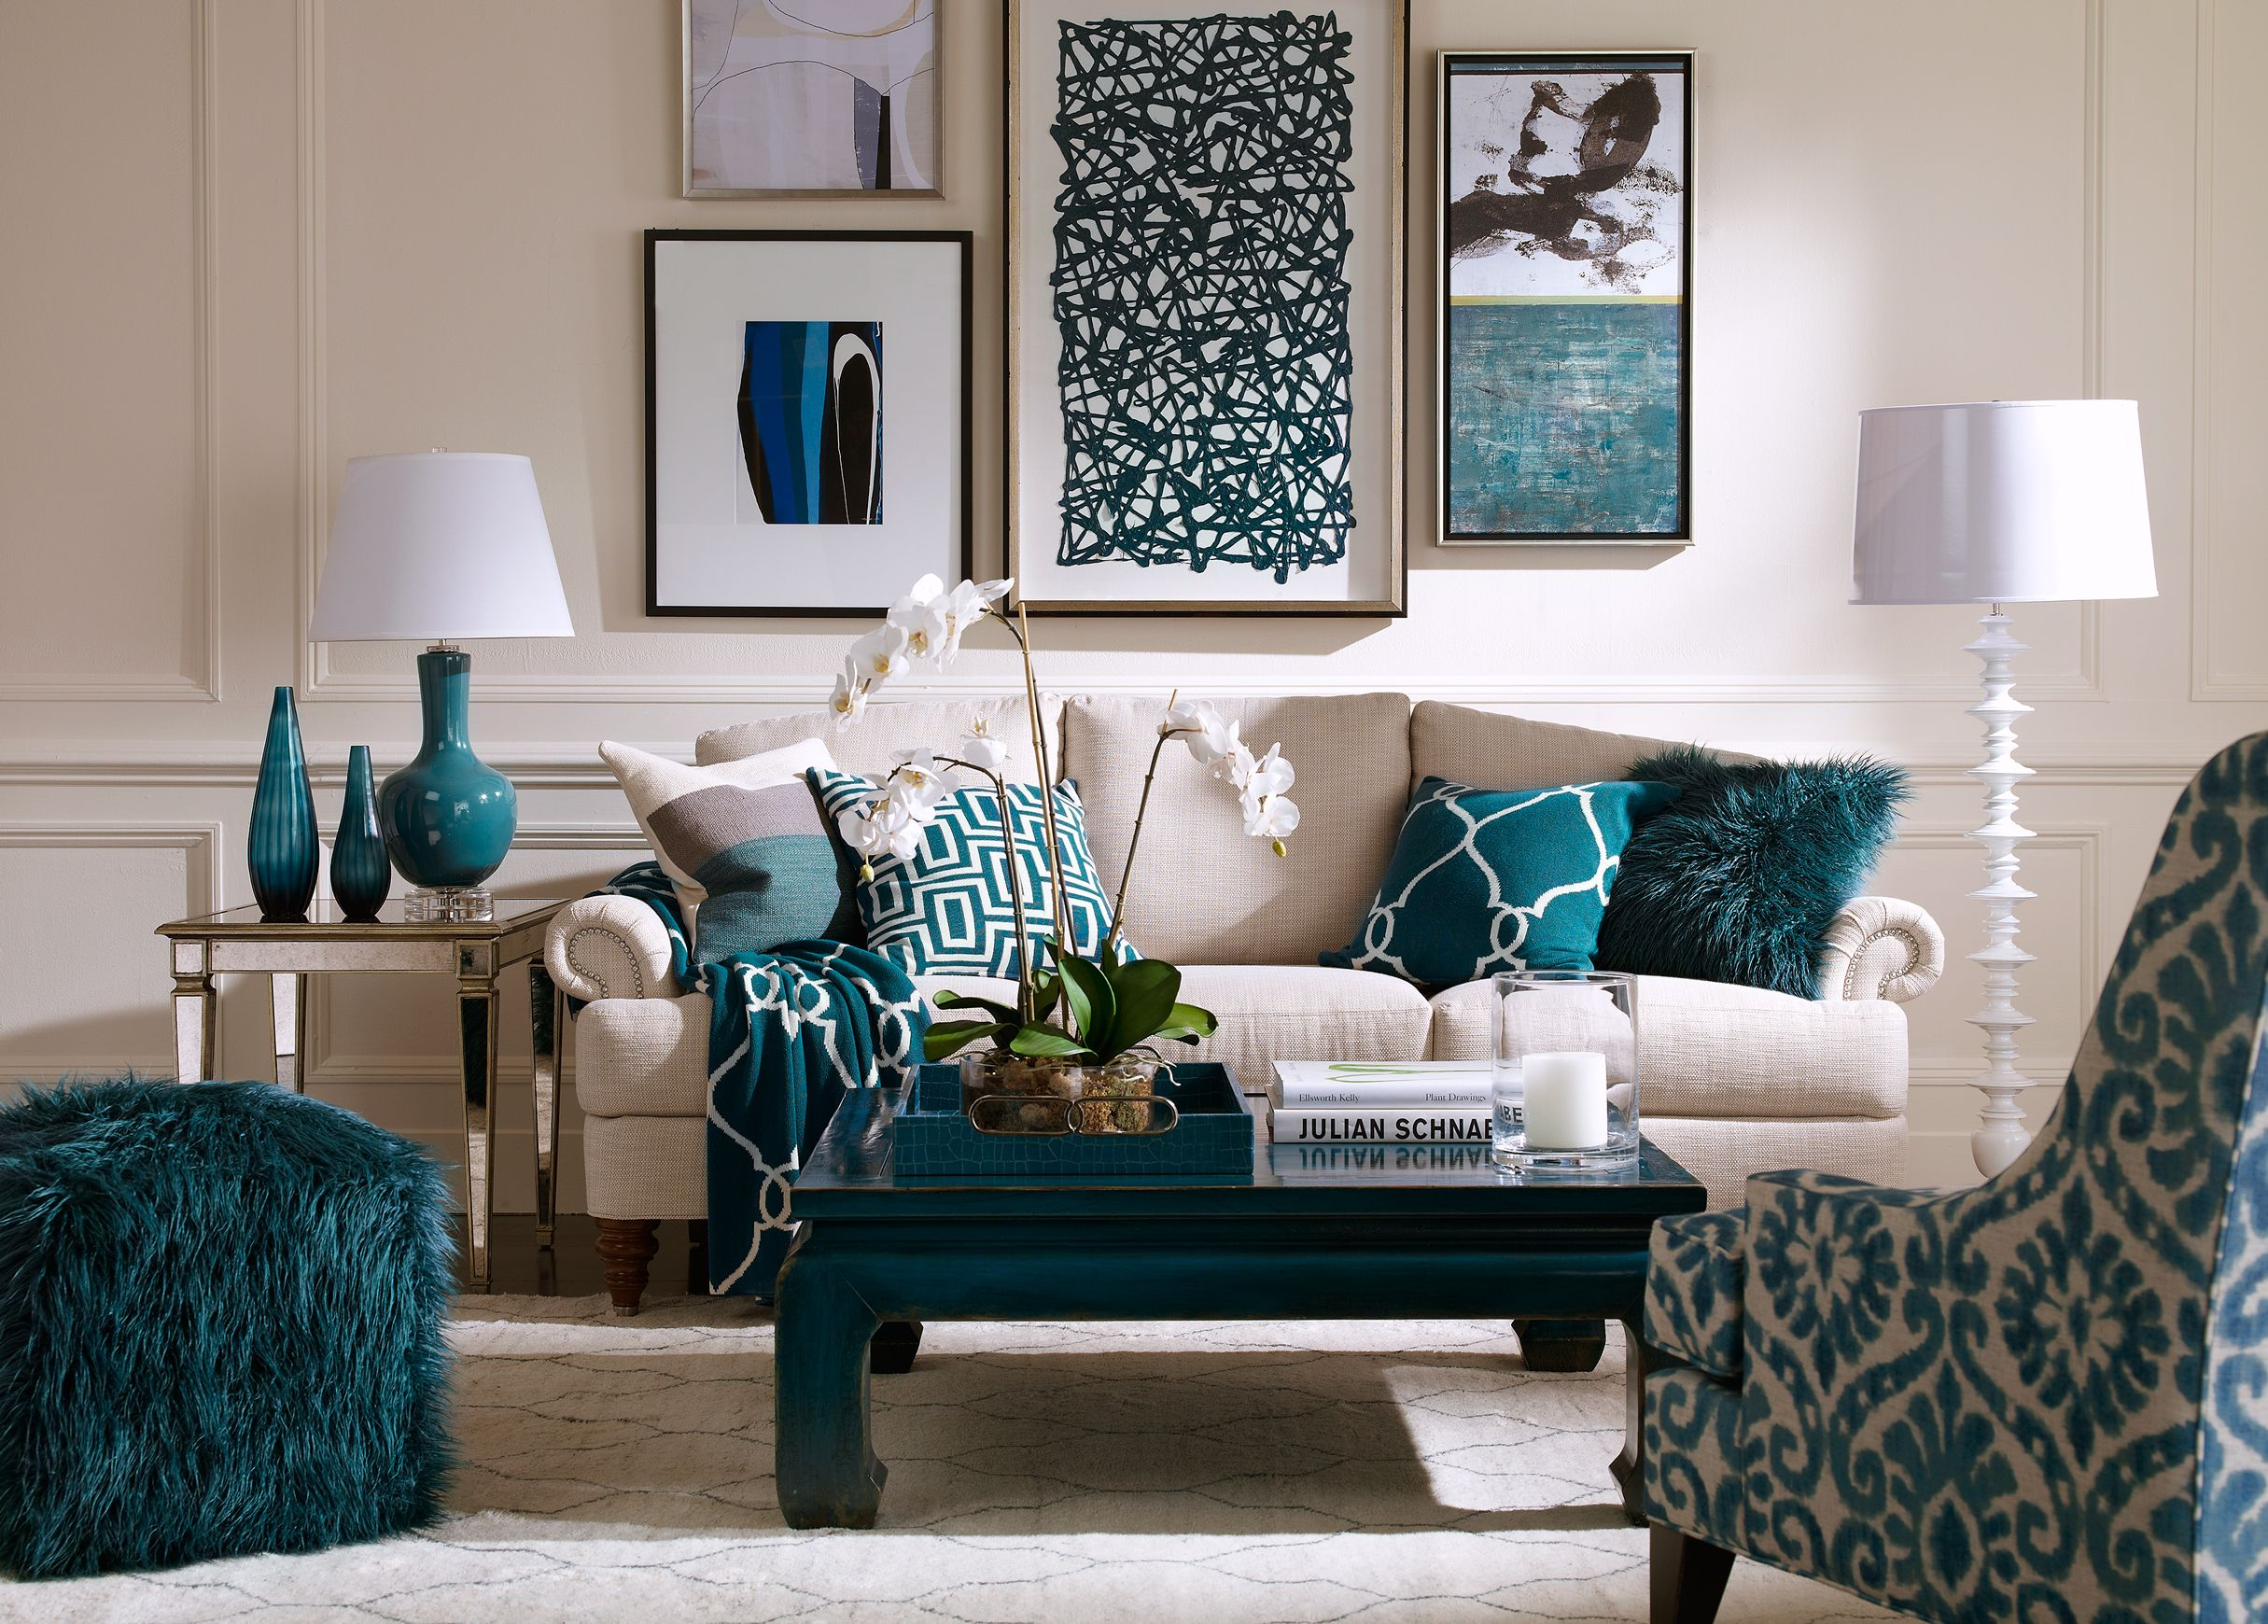 15 Best Images About Turquoise Room Decorations | Pinterest | Living ...